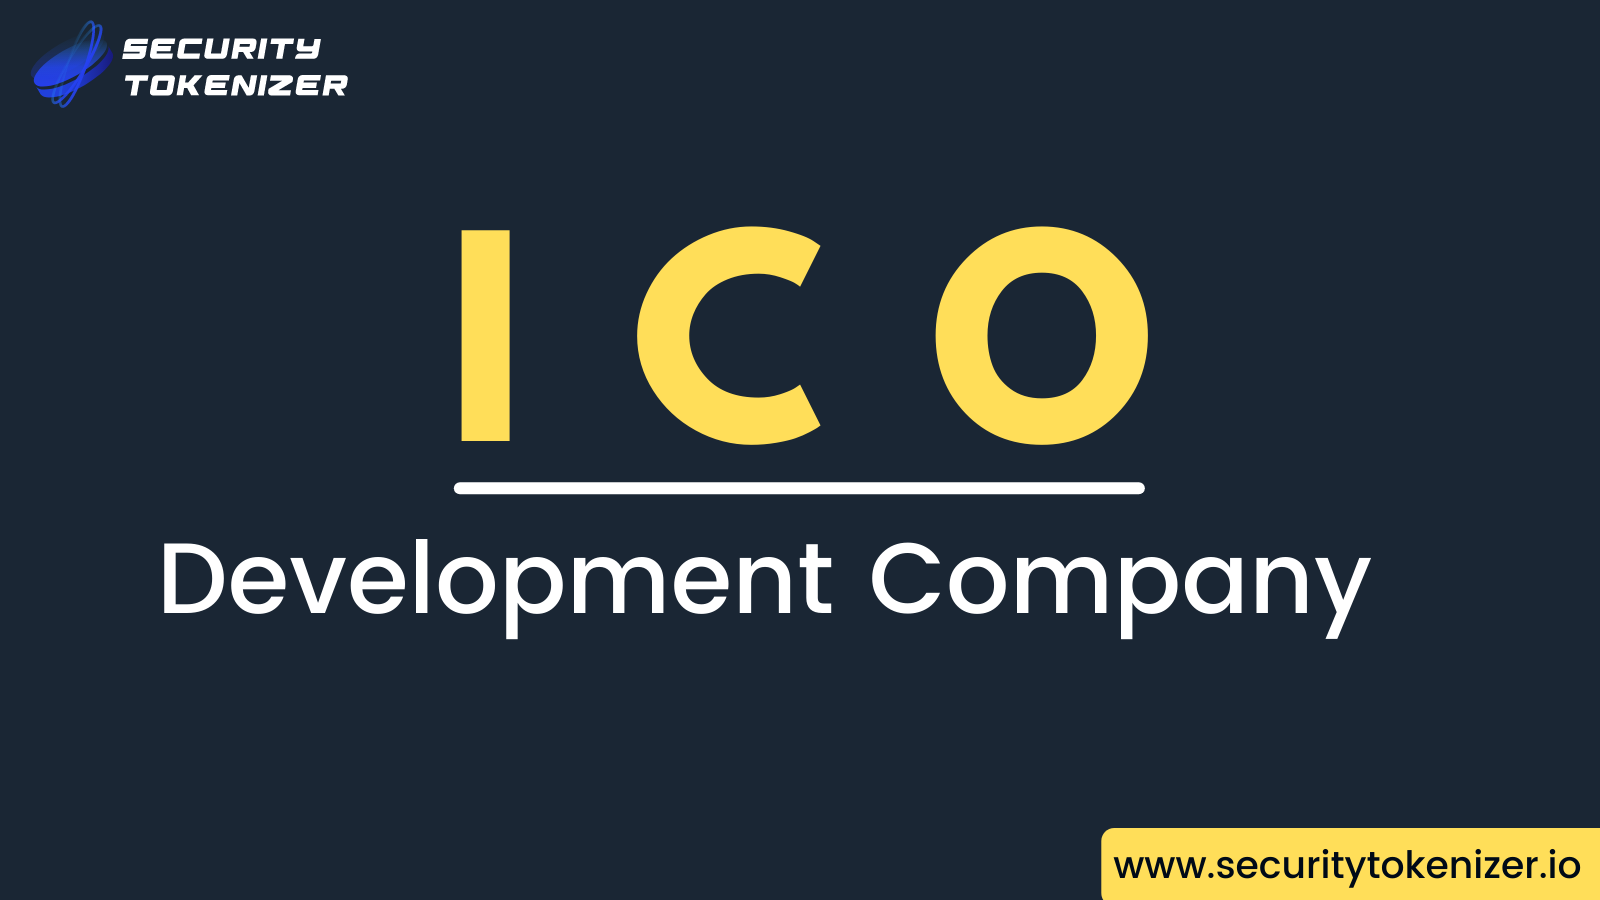 ICO Development Company To Create ICO Tokens and Launch Your ICO